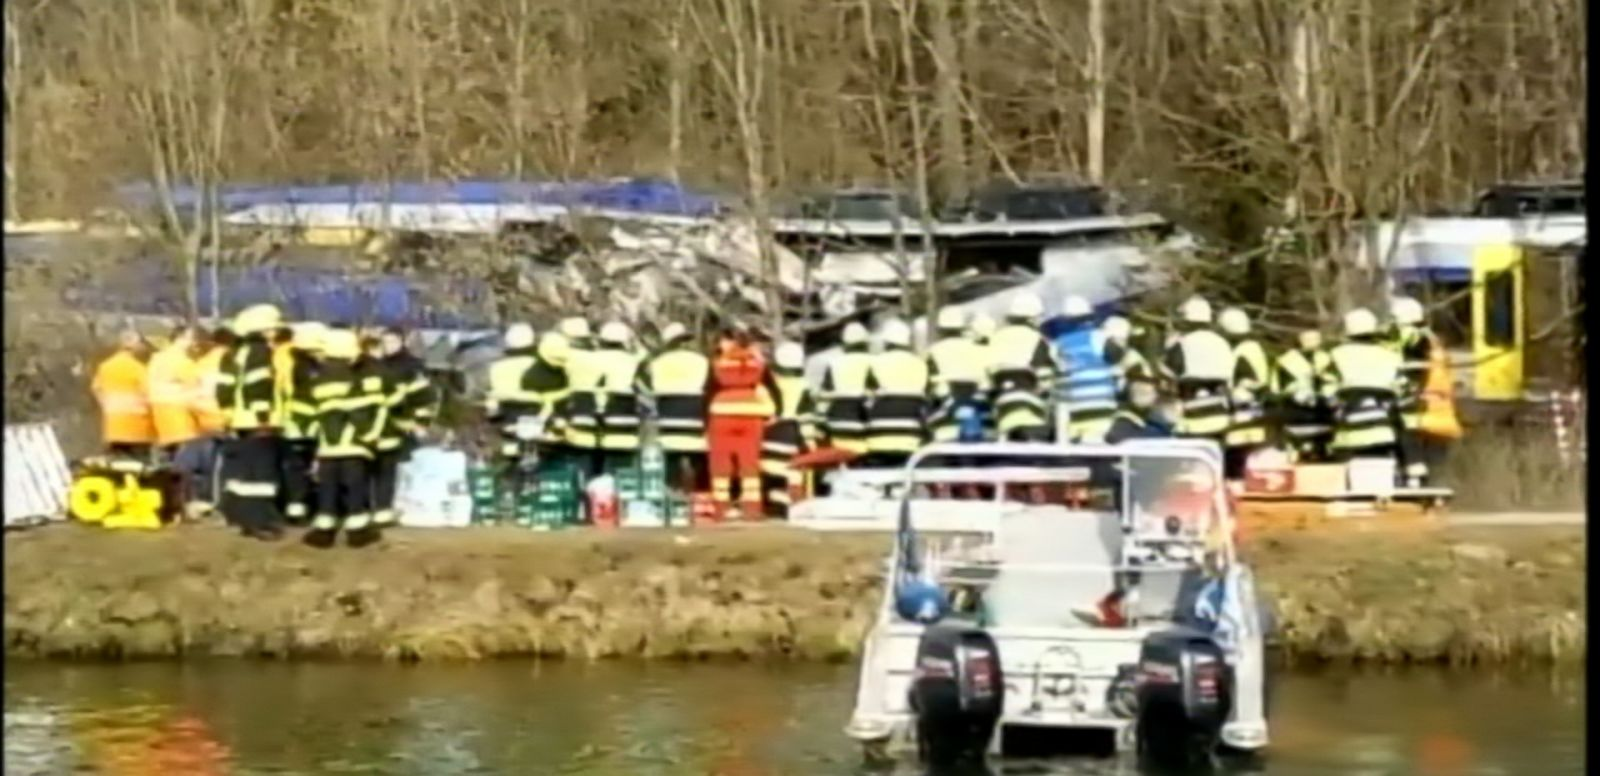 VIDEO: Two morning commuter trains have collided in Bad Aibling in southern Germany, killing eight people and injuring more than 100 others, police said.